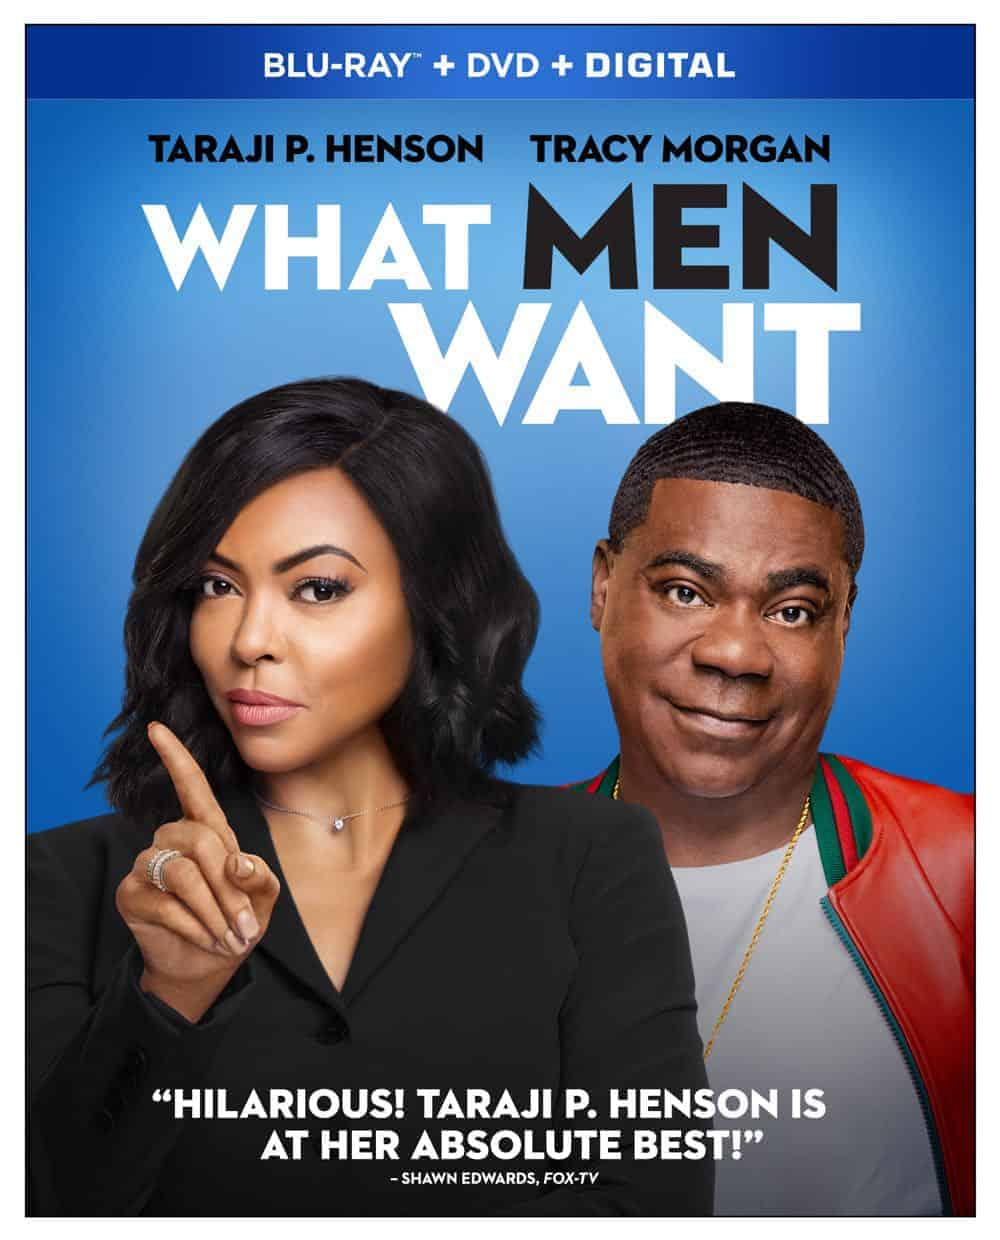 WHAT MEN WANT Blu-ray Giveaway   SEAT42F